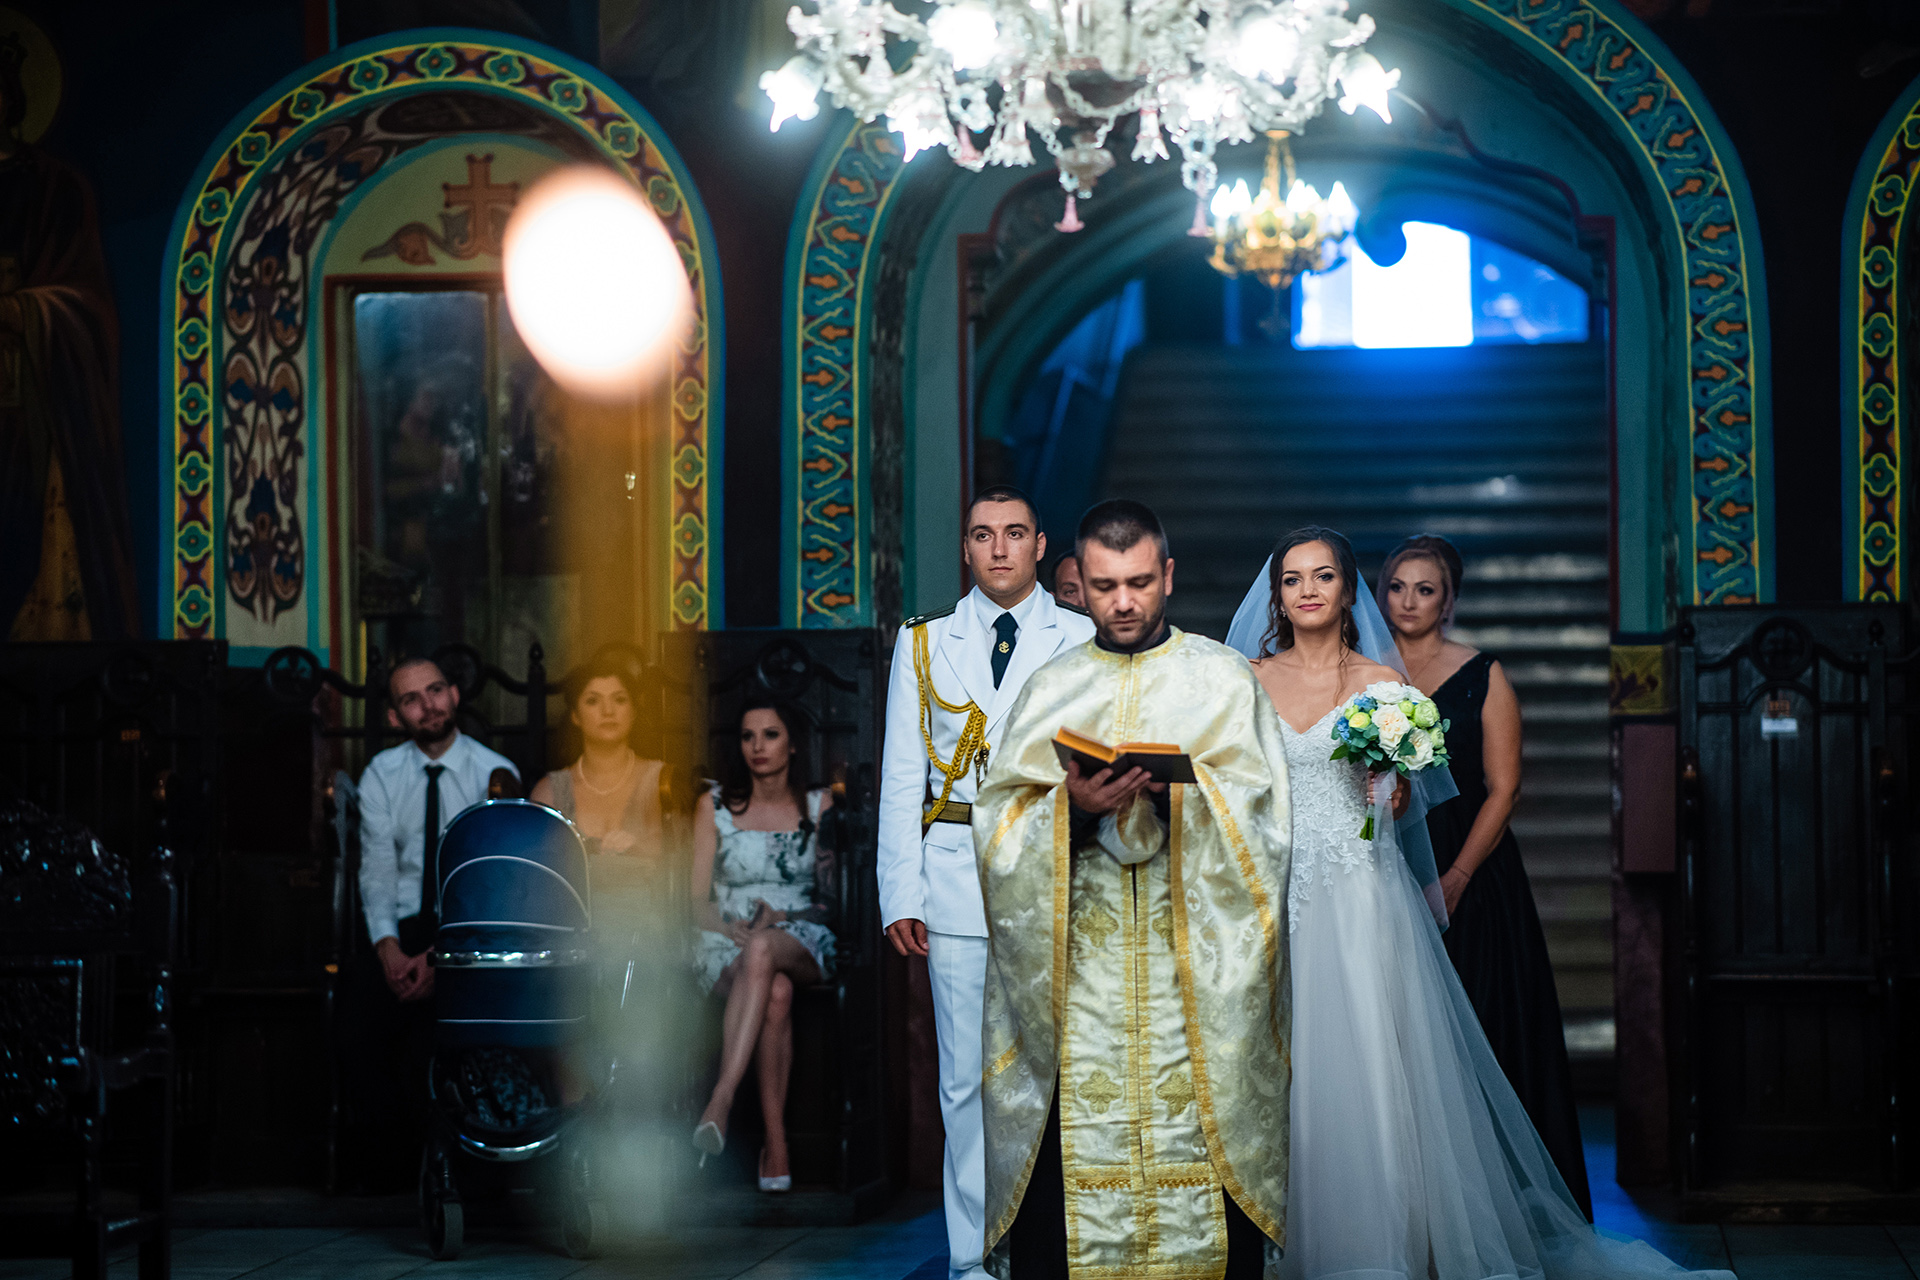 Ruse, Bulgaria Wedding Photos at Holy Trinity Cathedral | the bride walks down the aisle